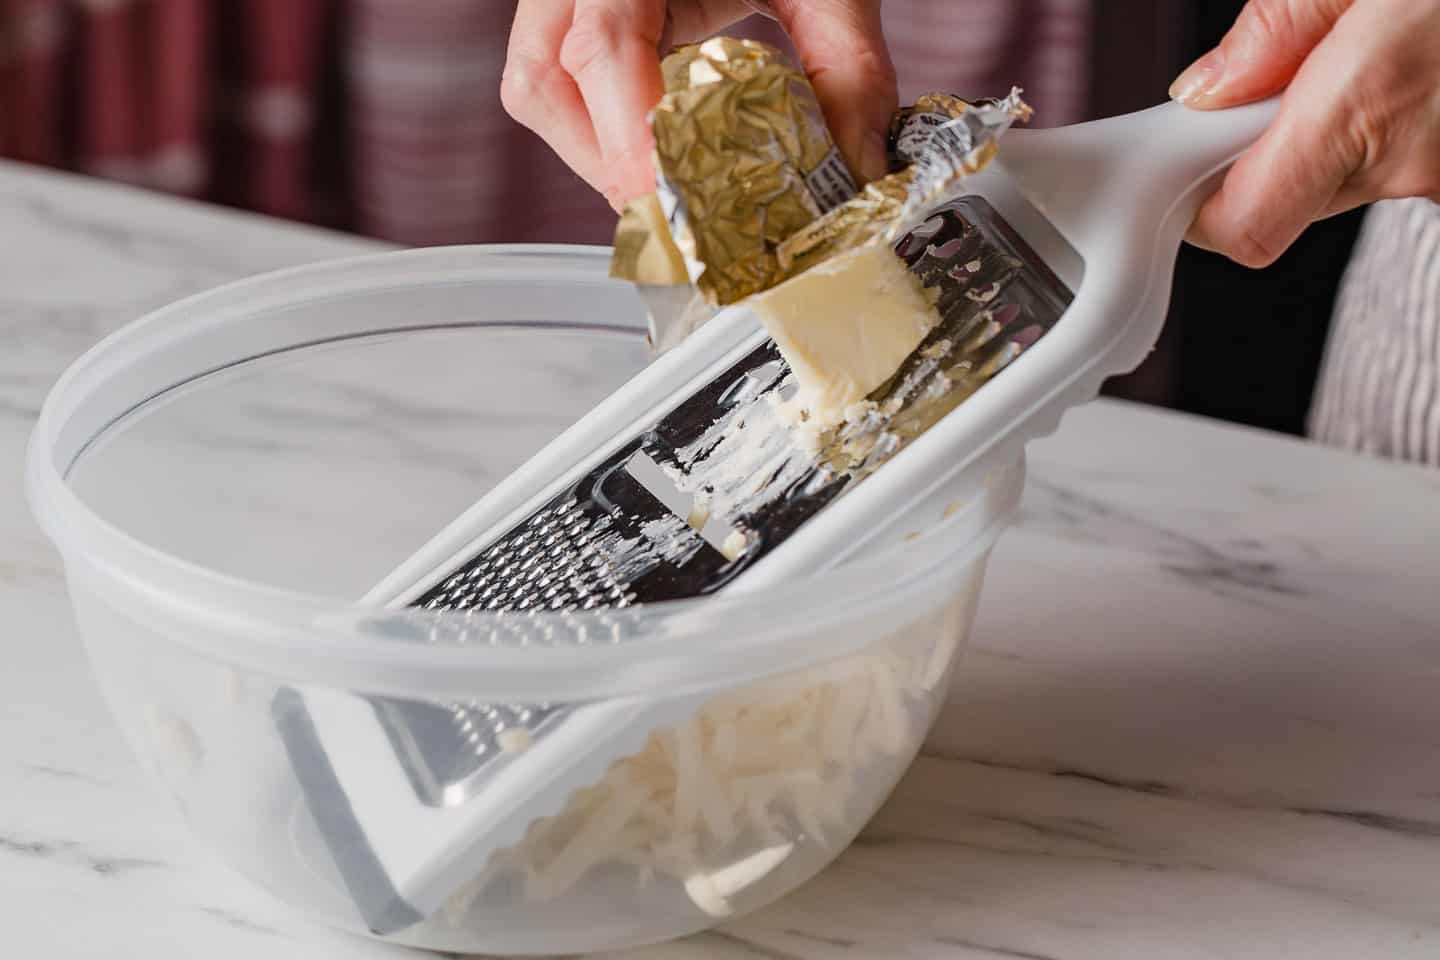 A woman grating butter into a bowl.